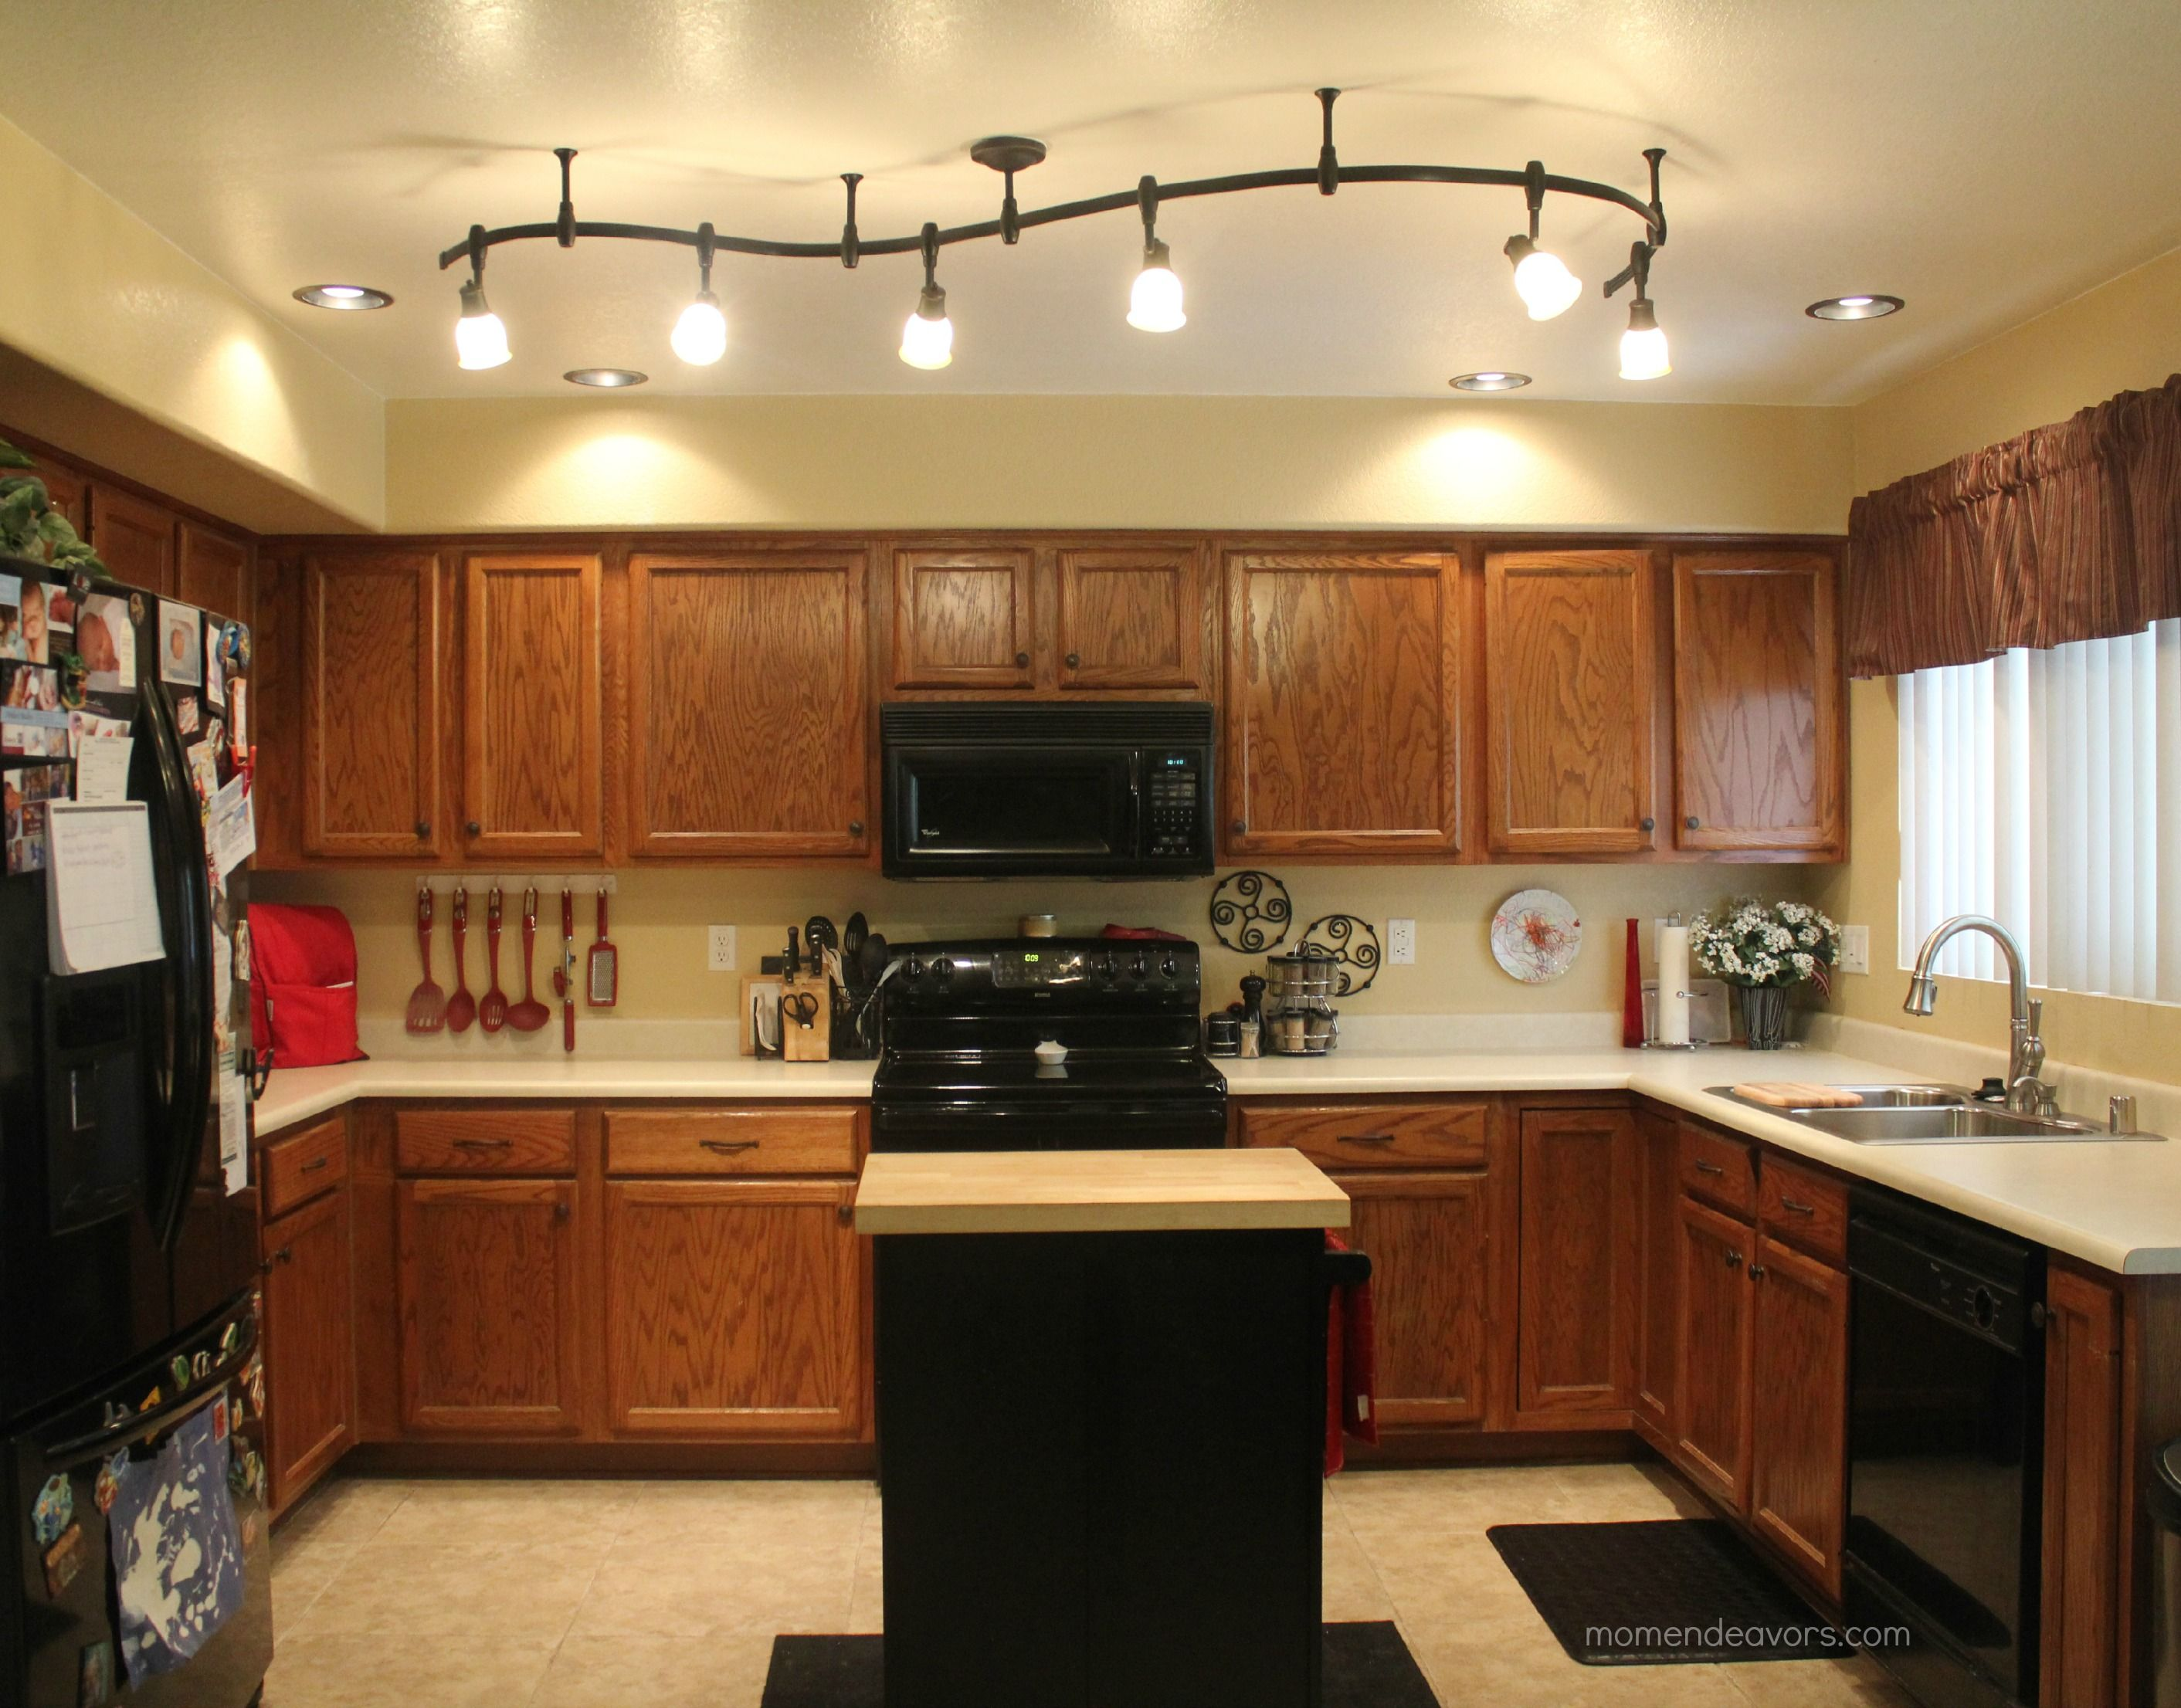 Lighting Idea For Kitchen 11 Stunning Photos Of Kitchen Track Lighting  Family Kitchen .